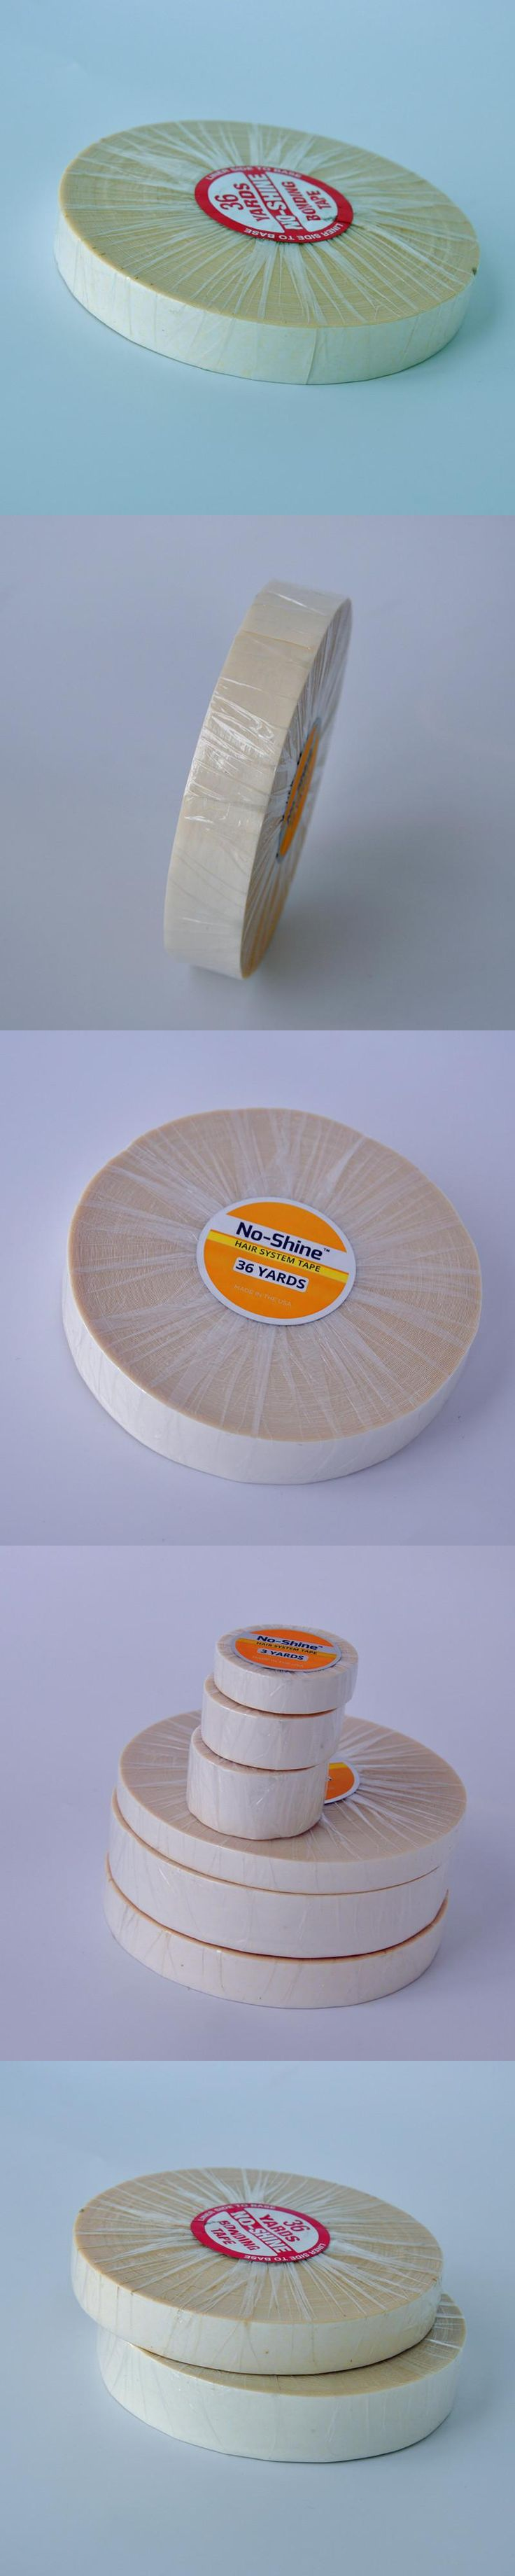 36yard Super No-Shine Double Tape Adhesives Tape For Toupees /Lace Wig/Hair Extension Professional Hair Accessory